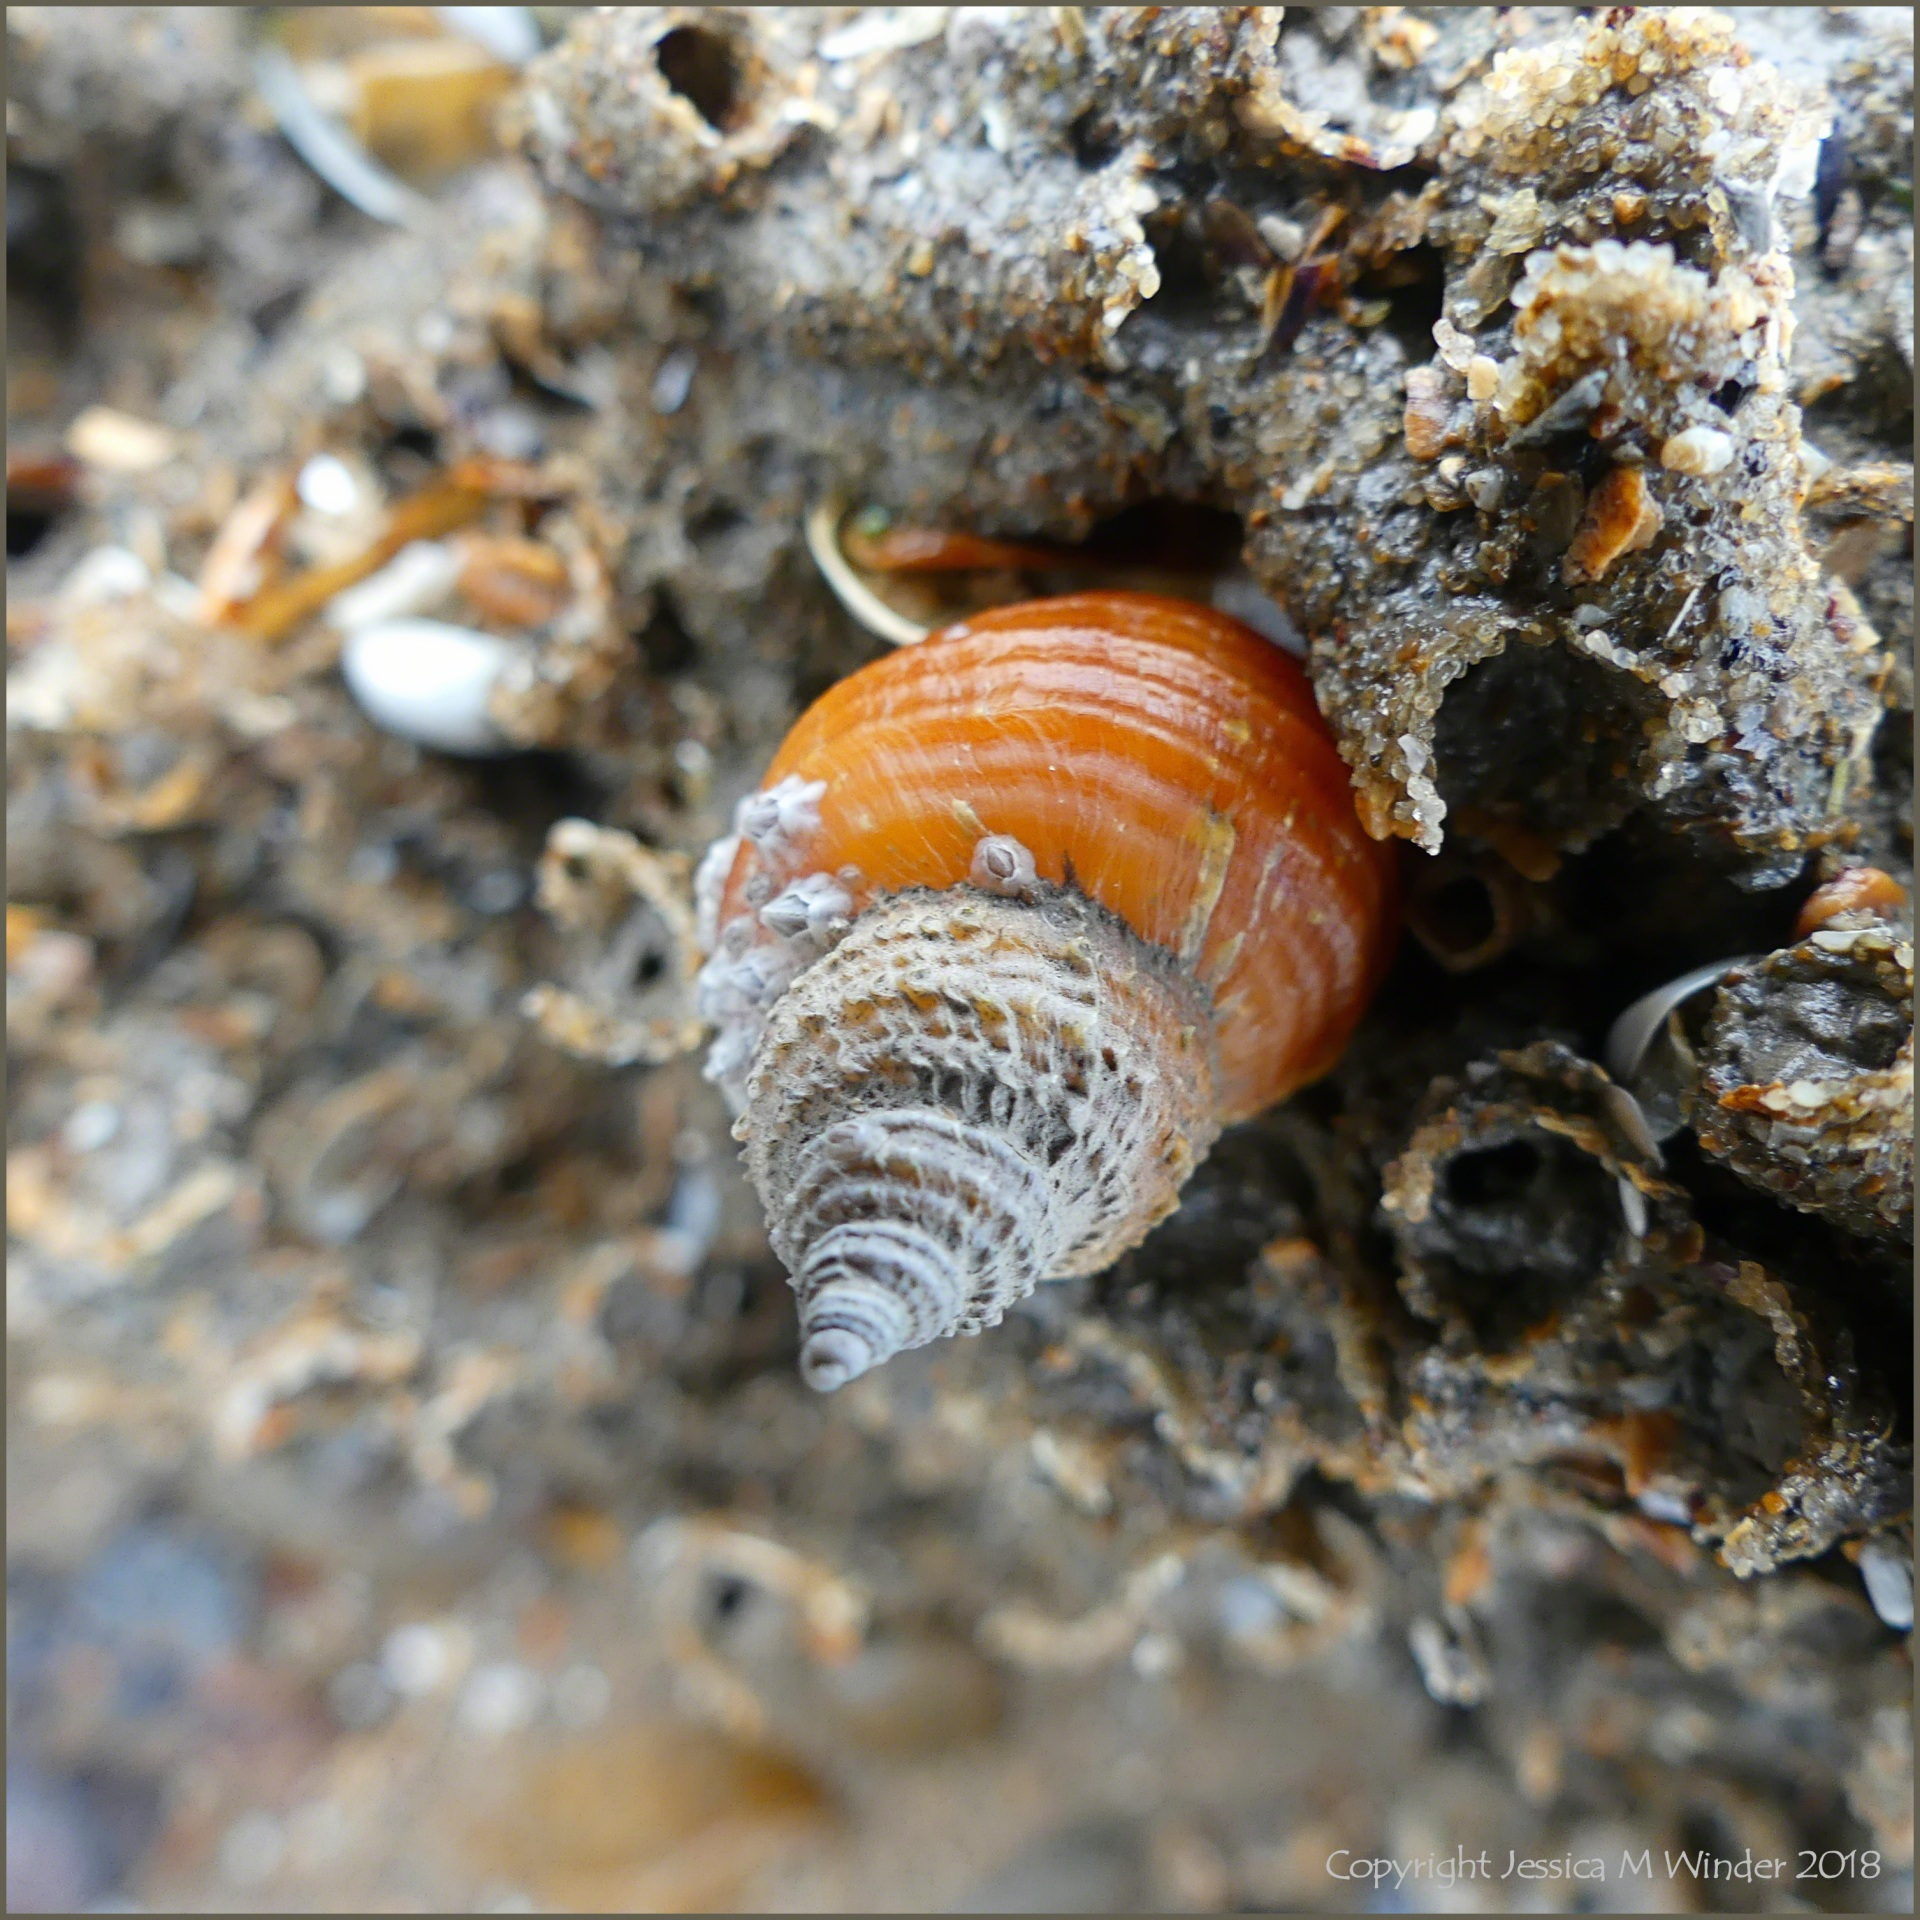 Dog whelk on honeycomb worm reef showing unusual shell features